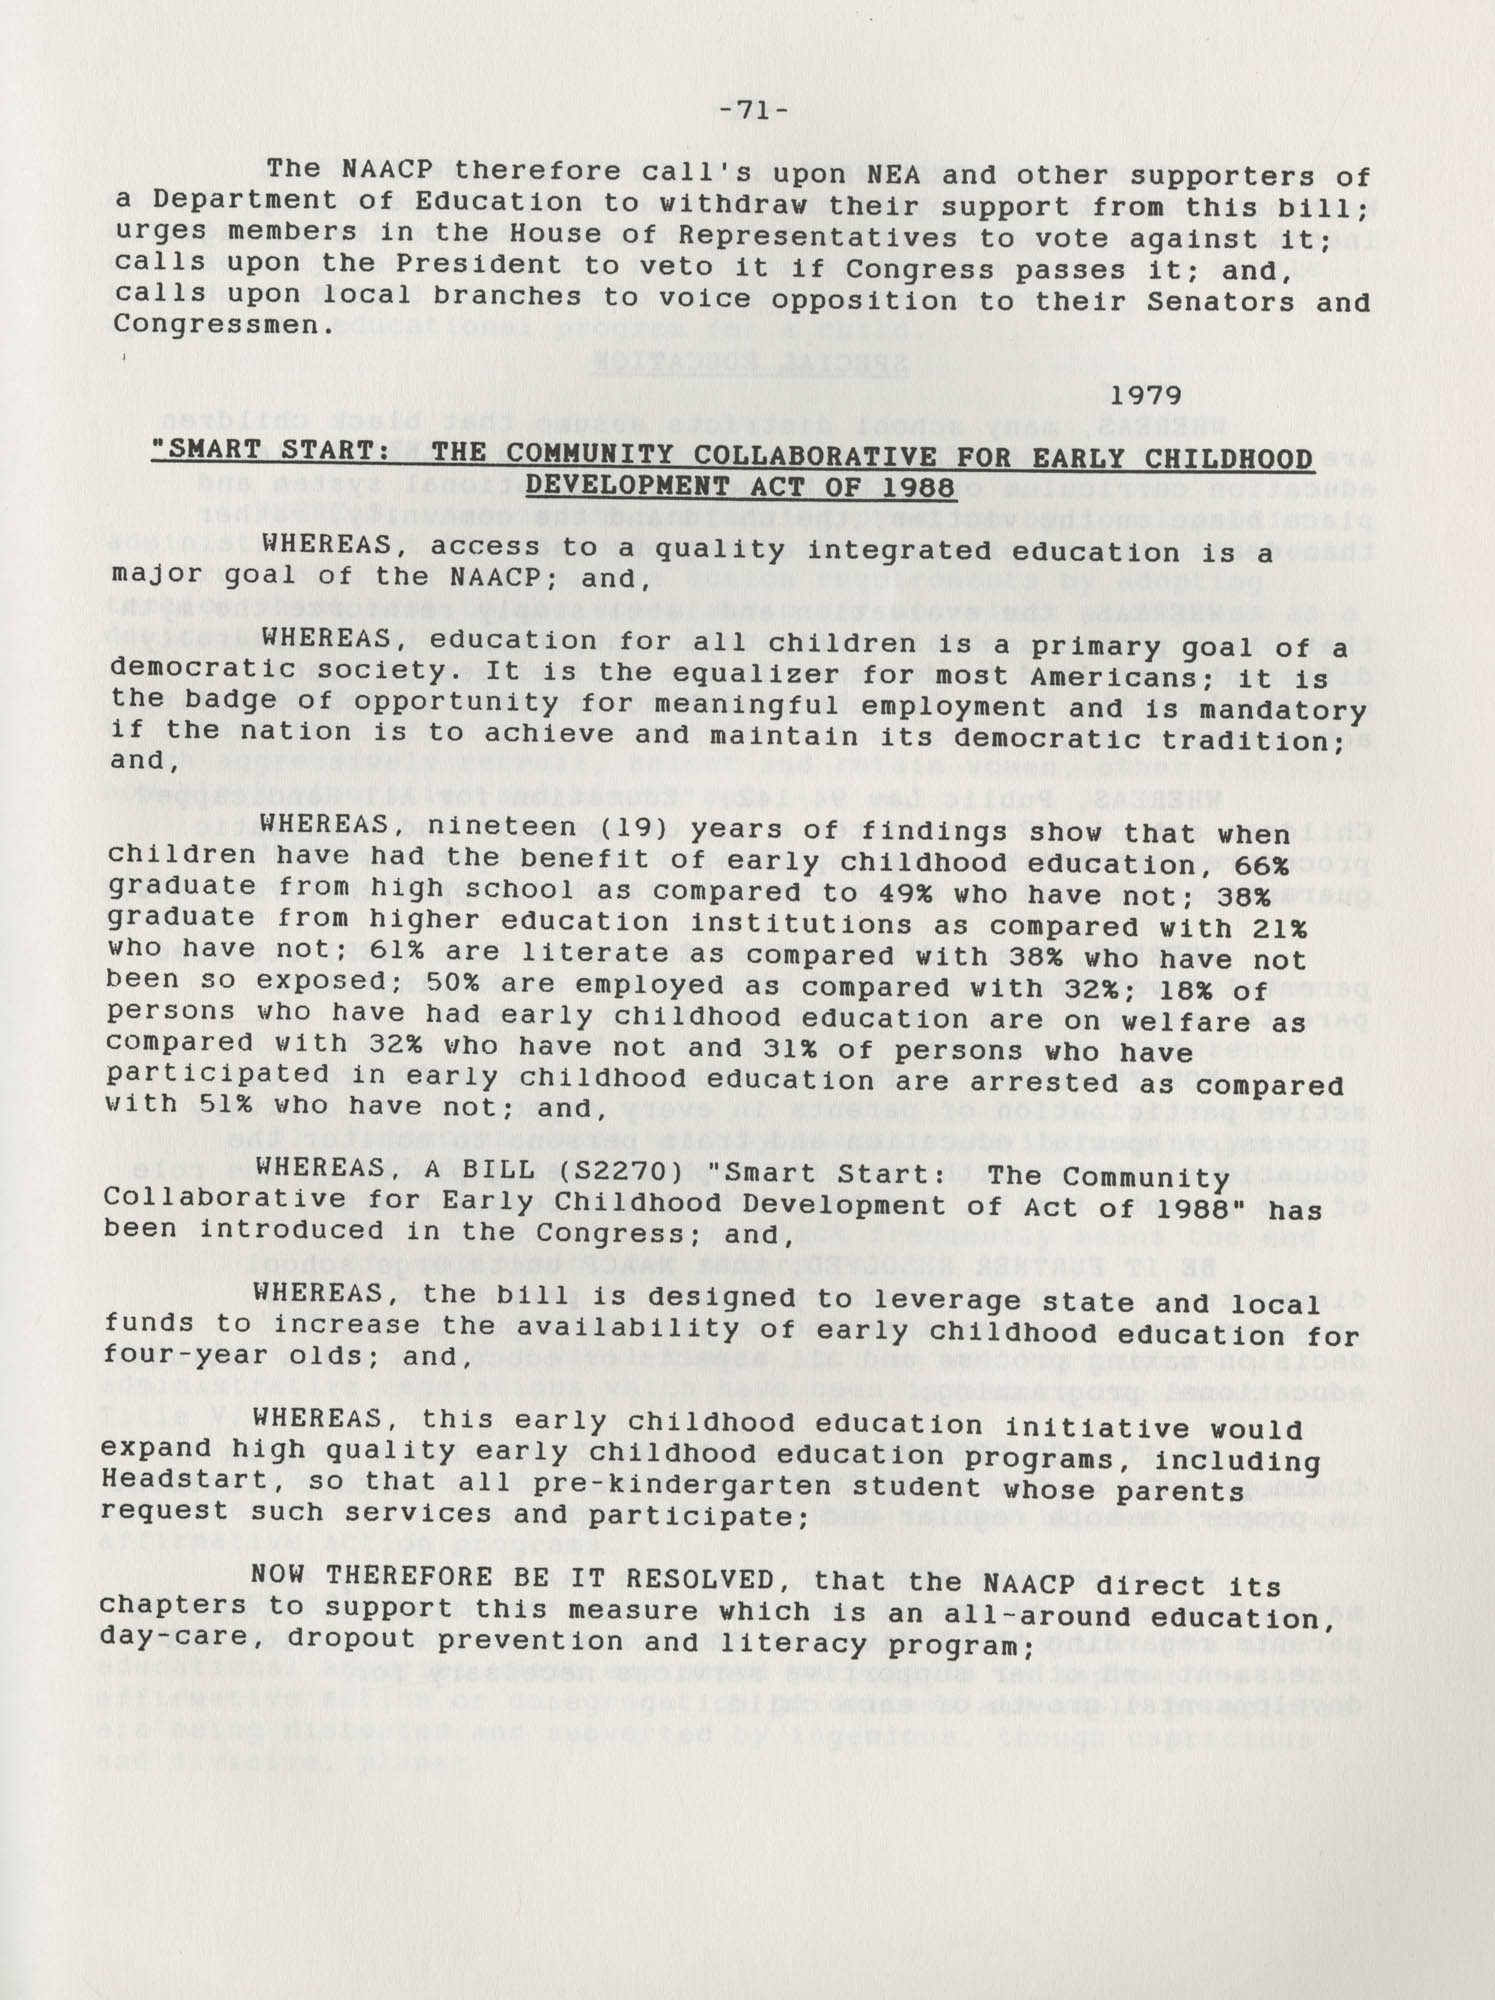 NAACP Resolutions on Education, 1970-1989, Index to Education Resolutions, Page 71